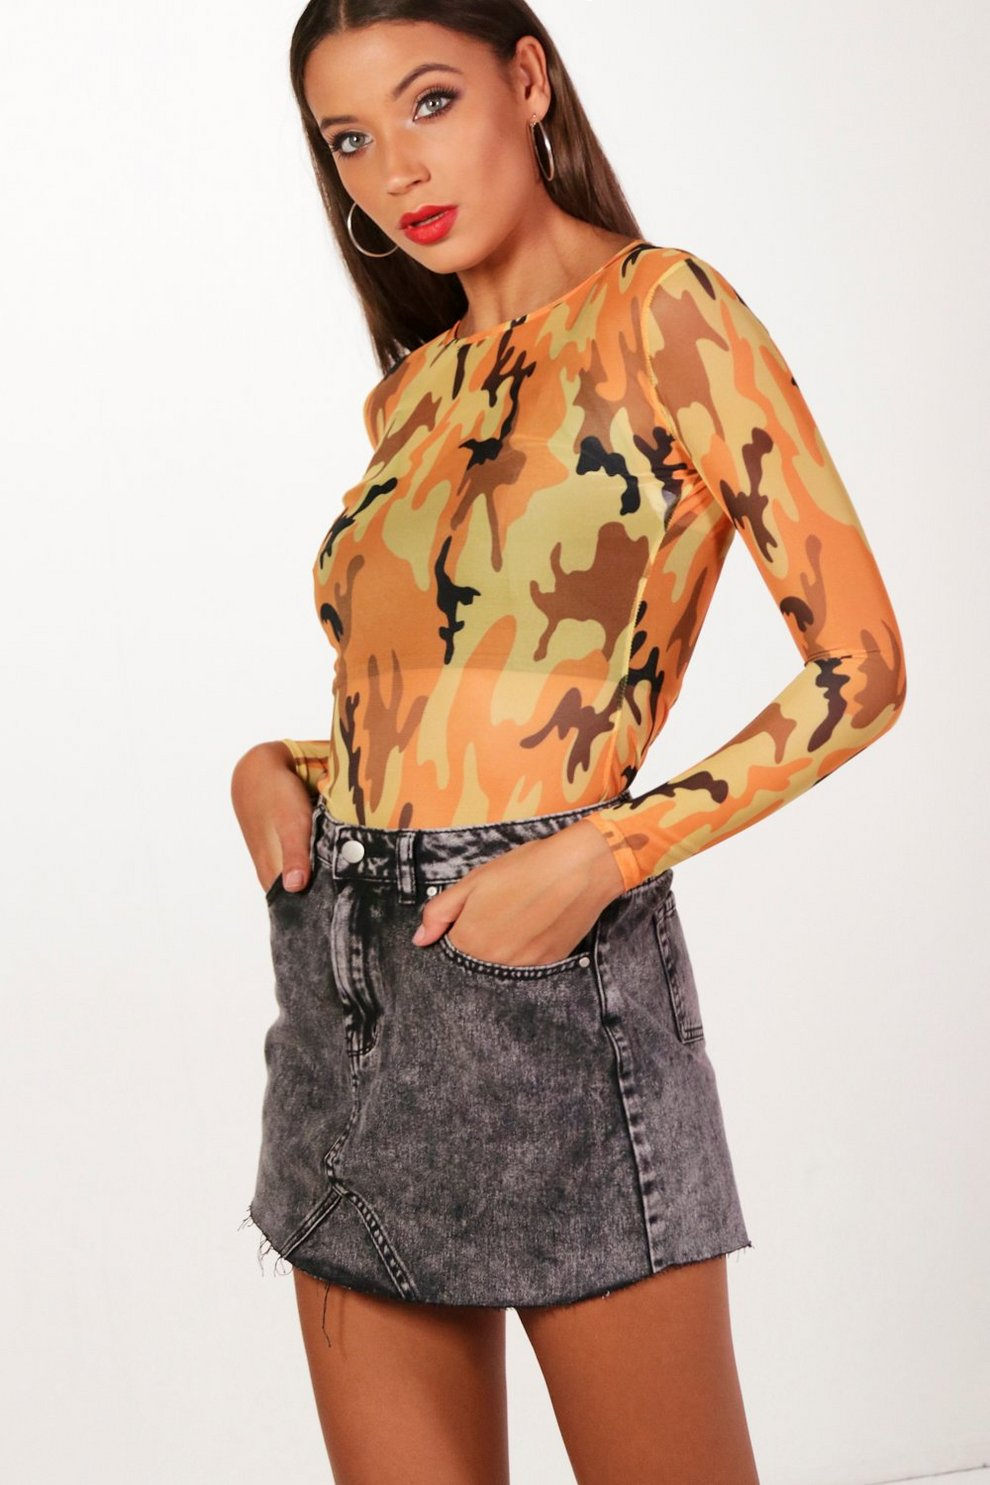 Boohoo Tall Acid Wash Denim Mini Skirt Perfect Cheap Price Cheapest Price Sale Online Largest Supplier For Sale Limited New Cheap Discount Sale jUzraNm